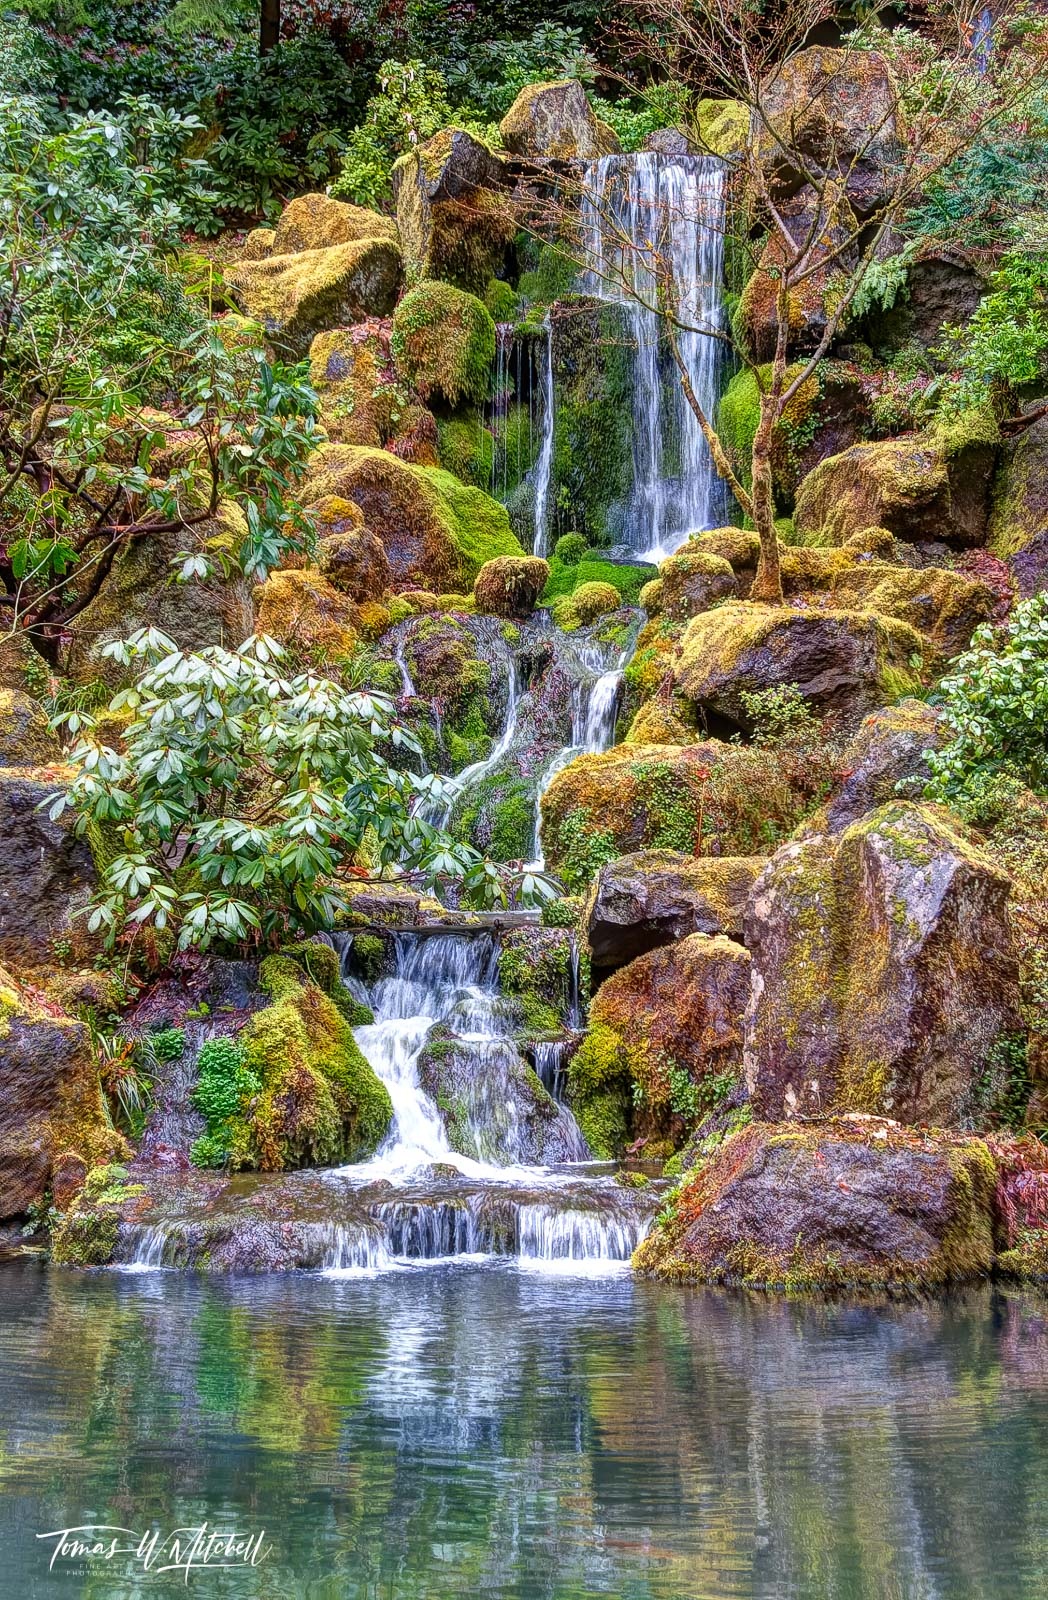 limited edition, fine art, prints, photograph, japanese garden, portland oregon, heavenly falls, waterfall, moss, rocks, green, yellow, tree, reflection, photo